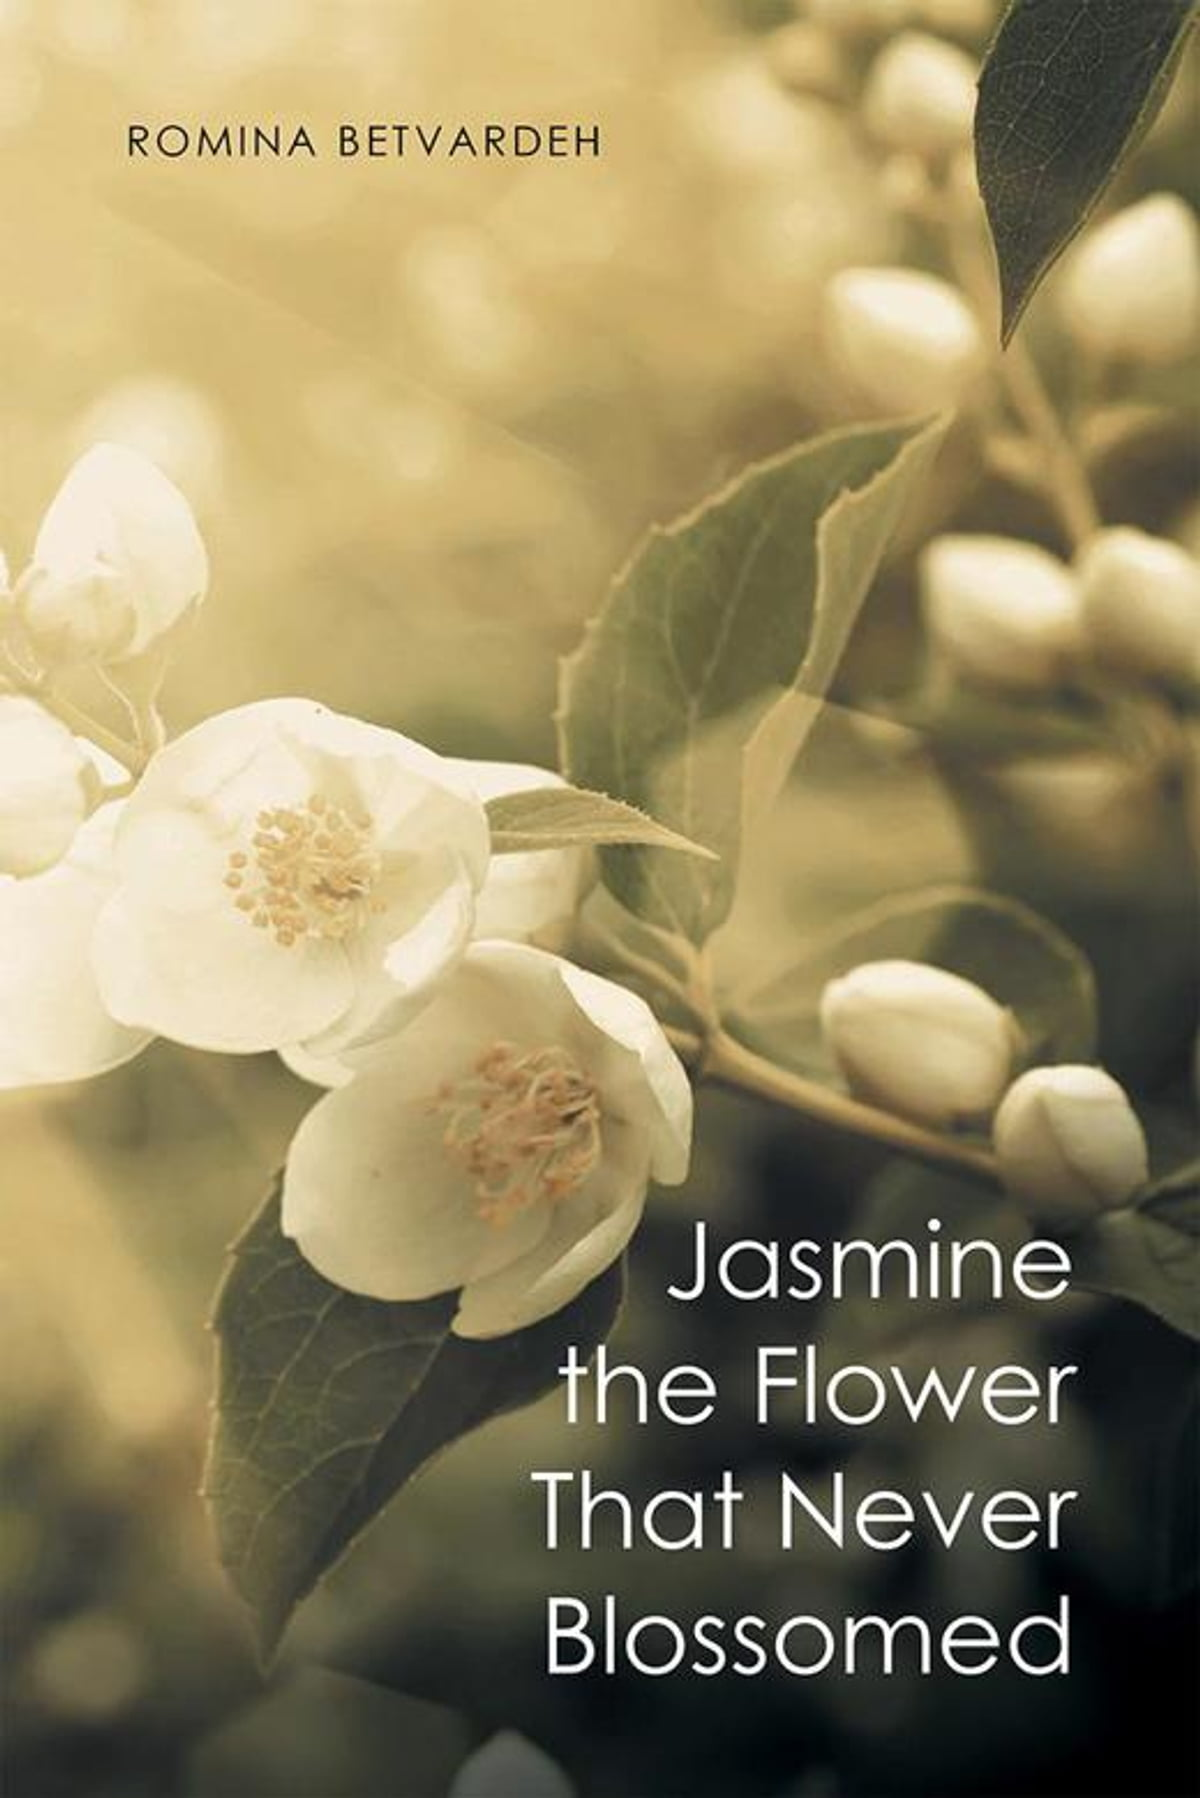 Jasmine The Flower That Never Blossomed Ebook By Romina Betvardeh